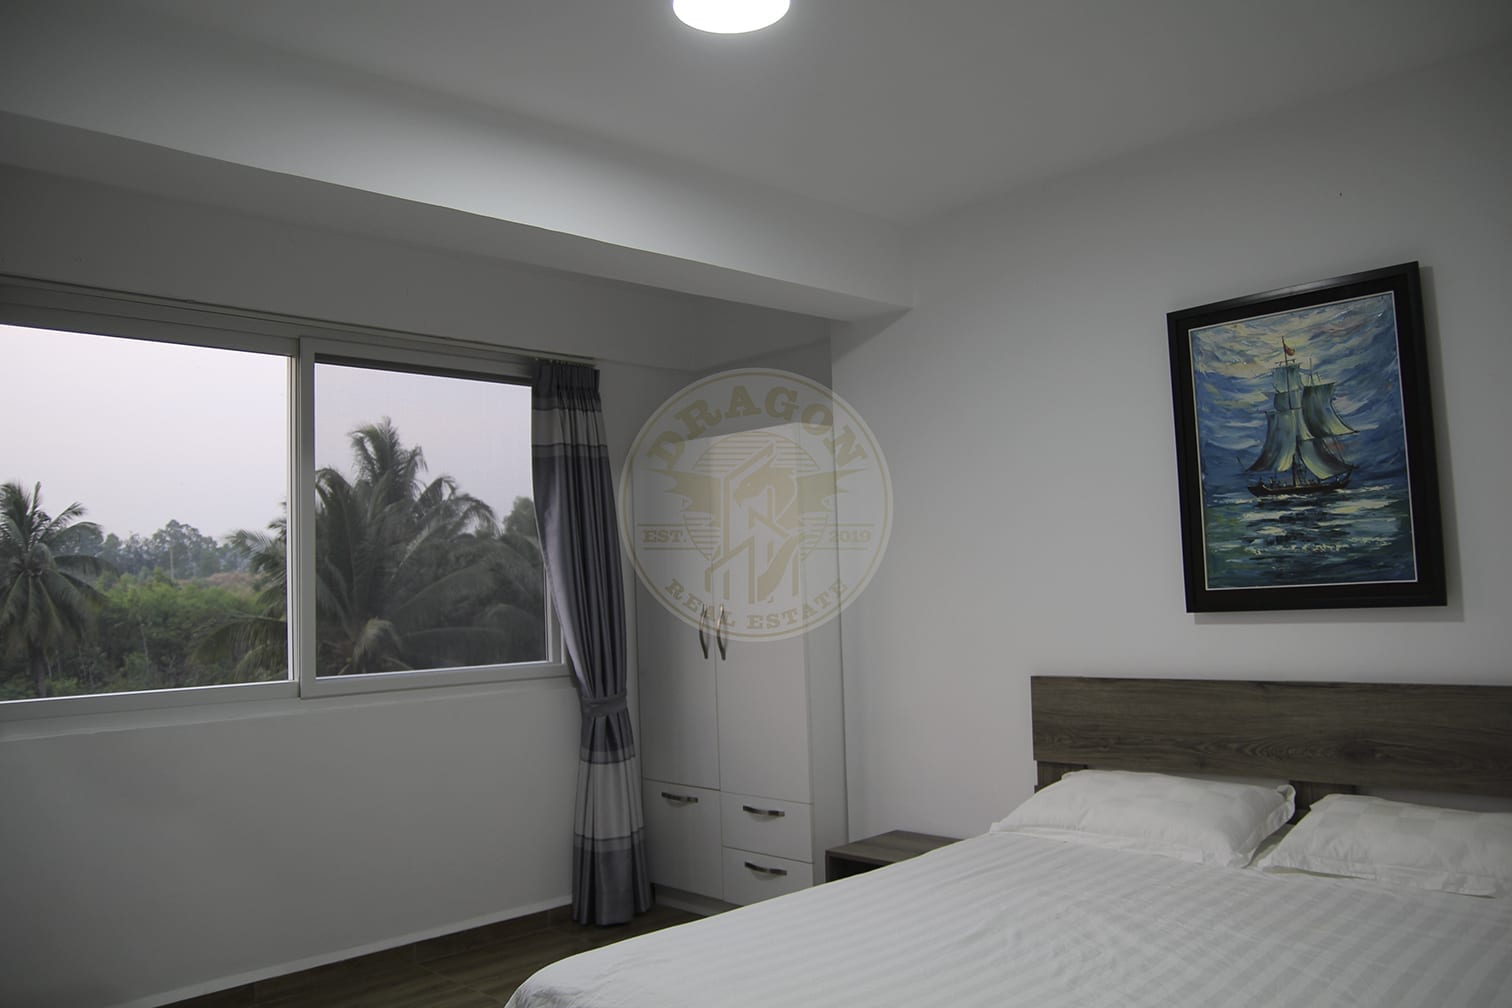 Location, Community, Quality Living Rent an Apartment in Sihanoukville. Sihanoukville Property